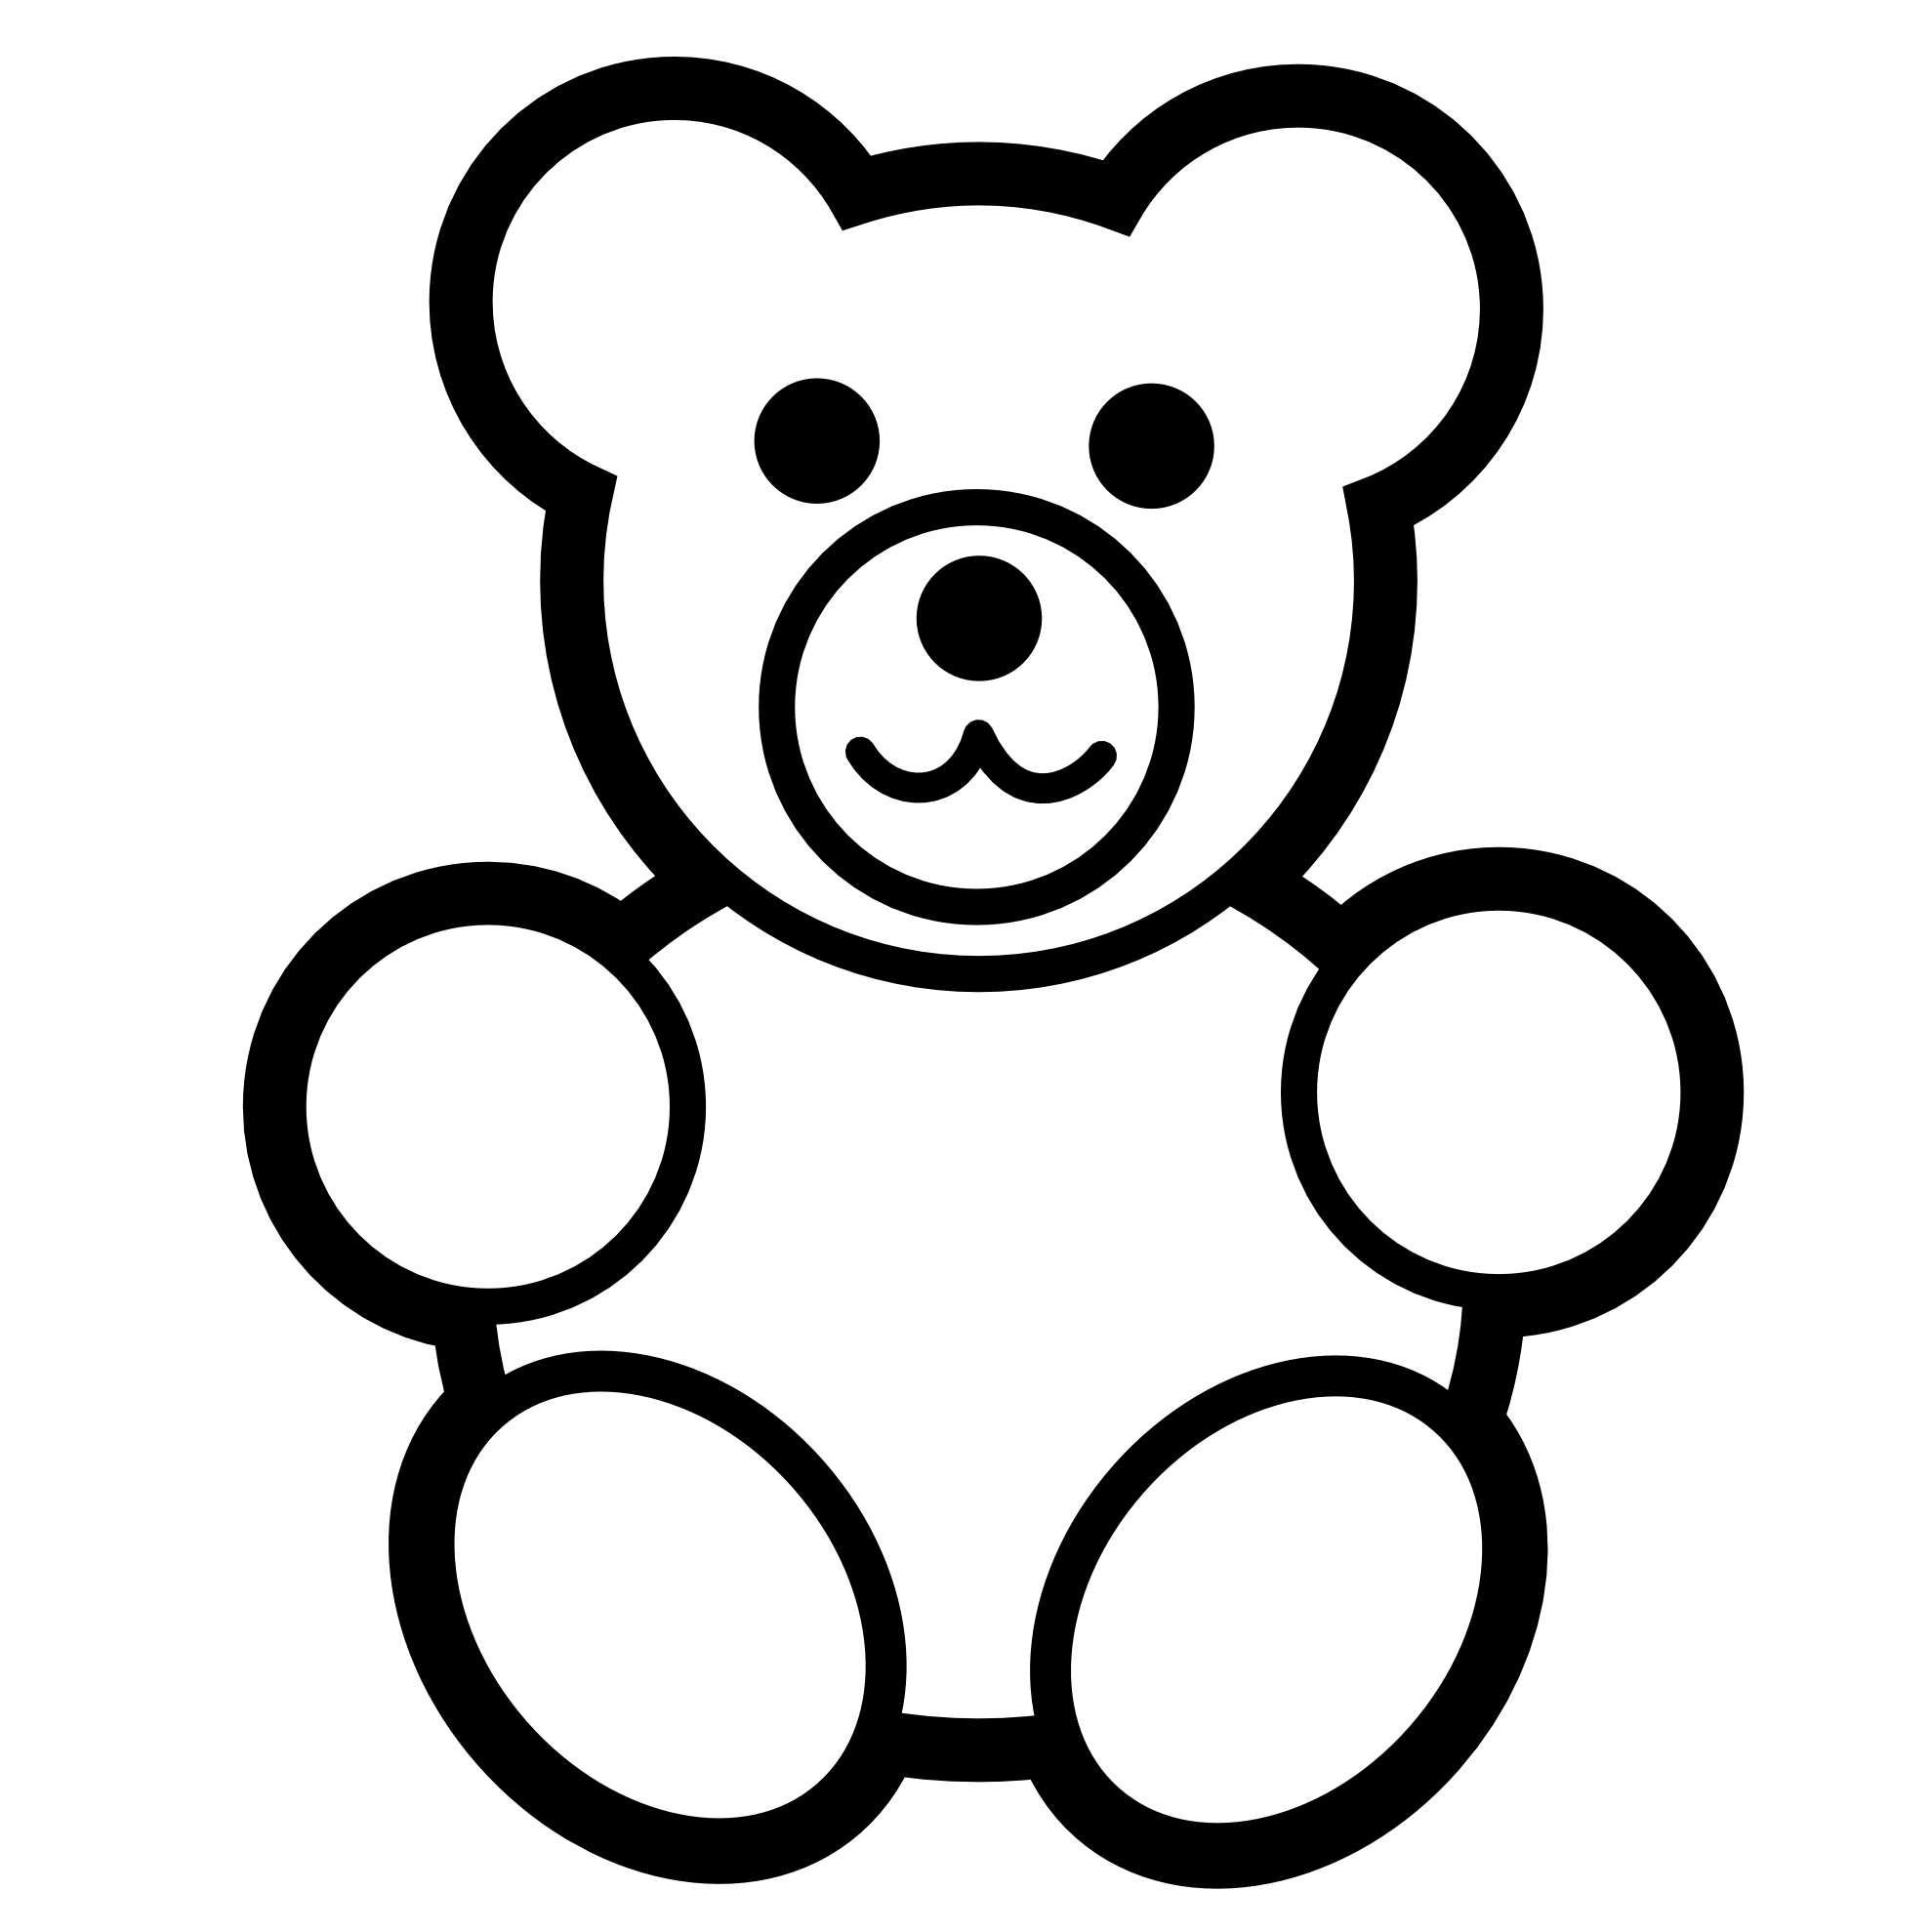 Bunnies teddy bear clipart black and white image freeuse library Gangsta Teddy Bear Drawing | Free download best Gangsta Teddy Bear ... image freeuse library